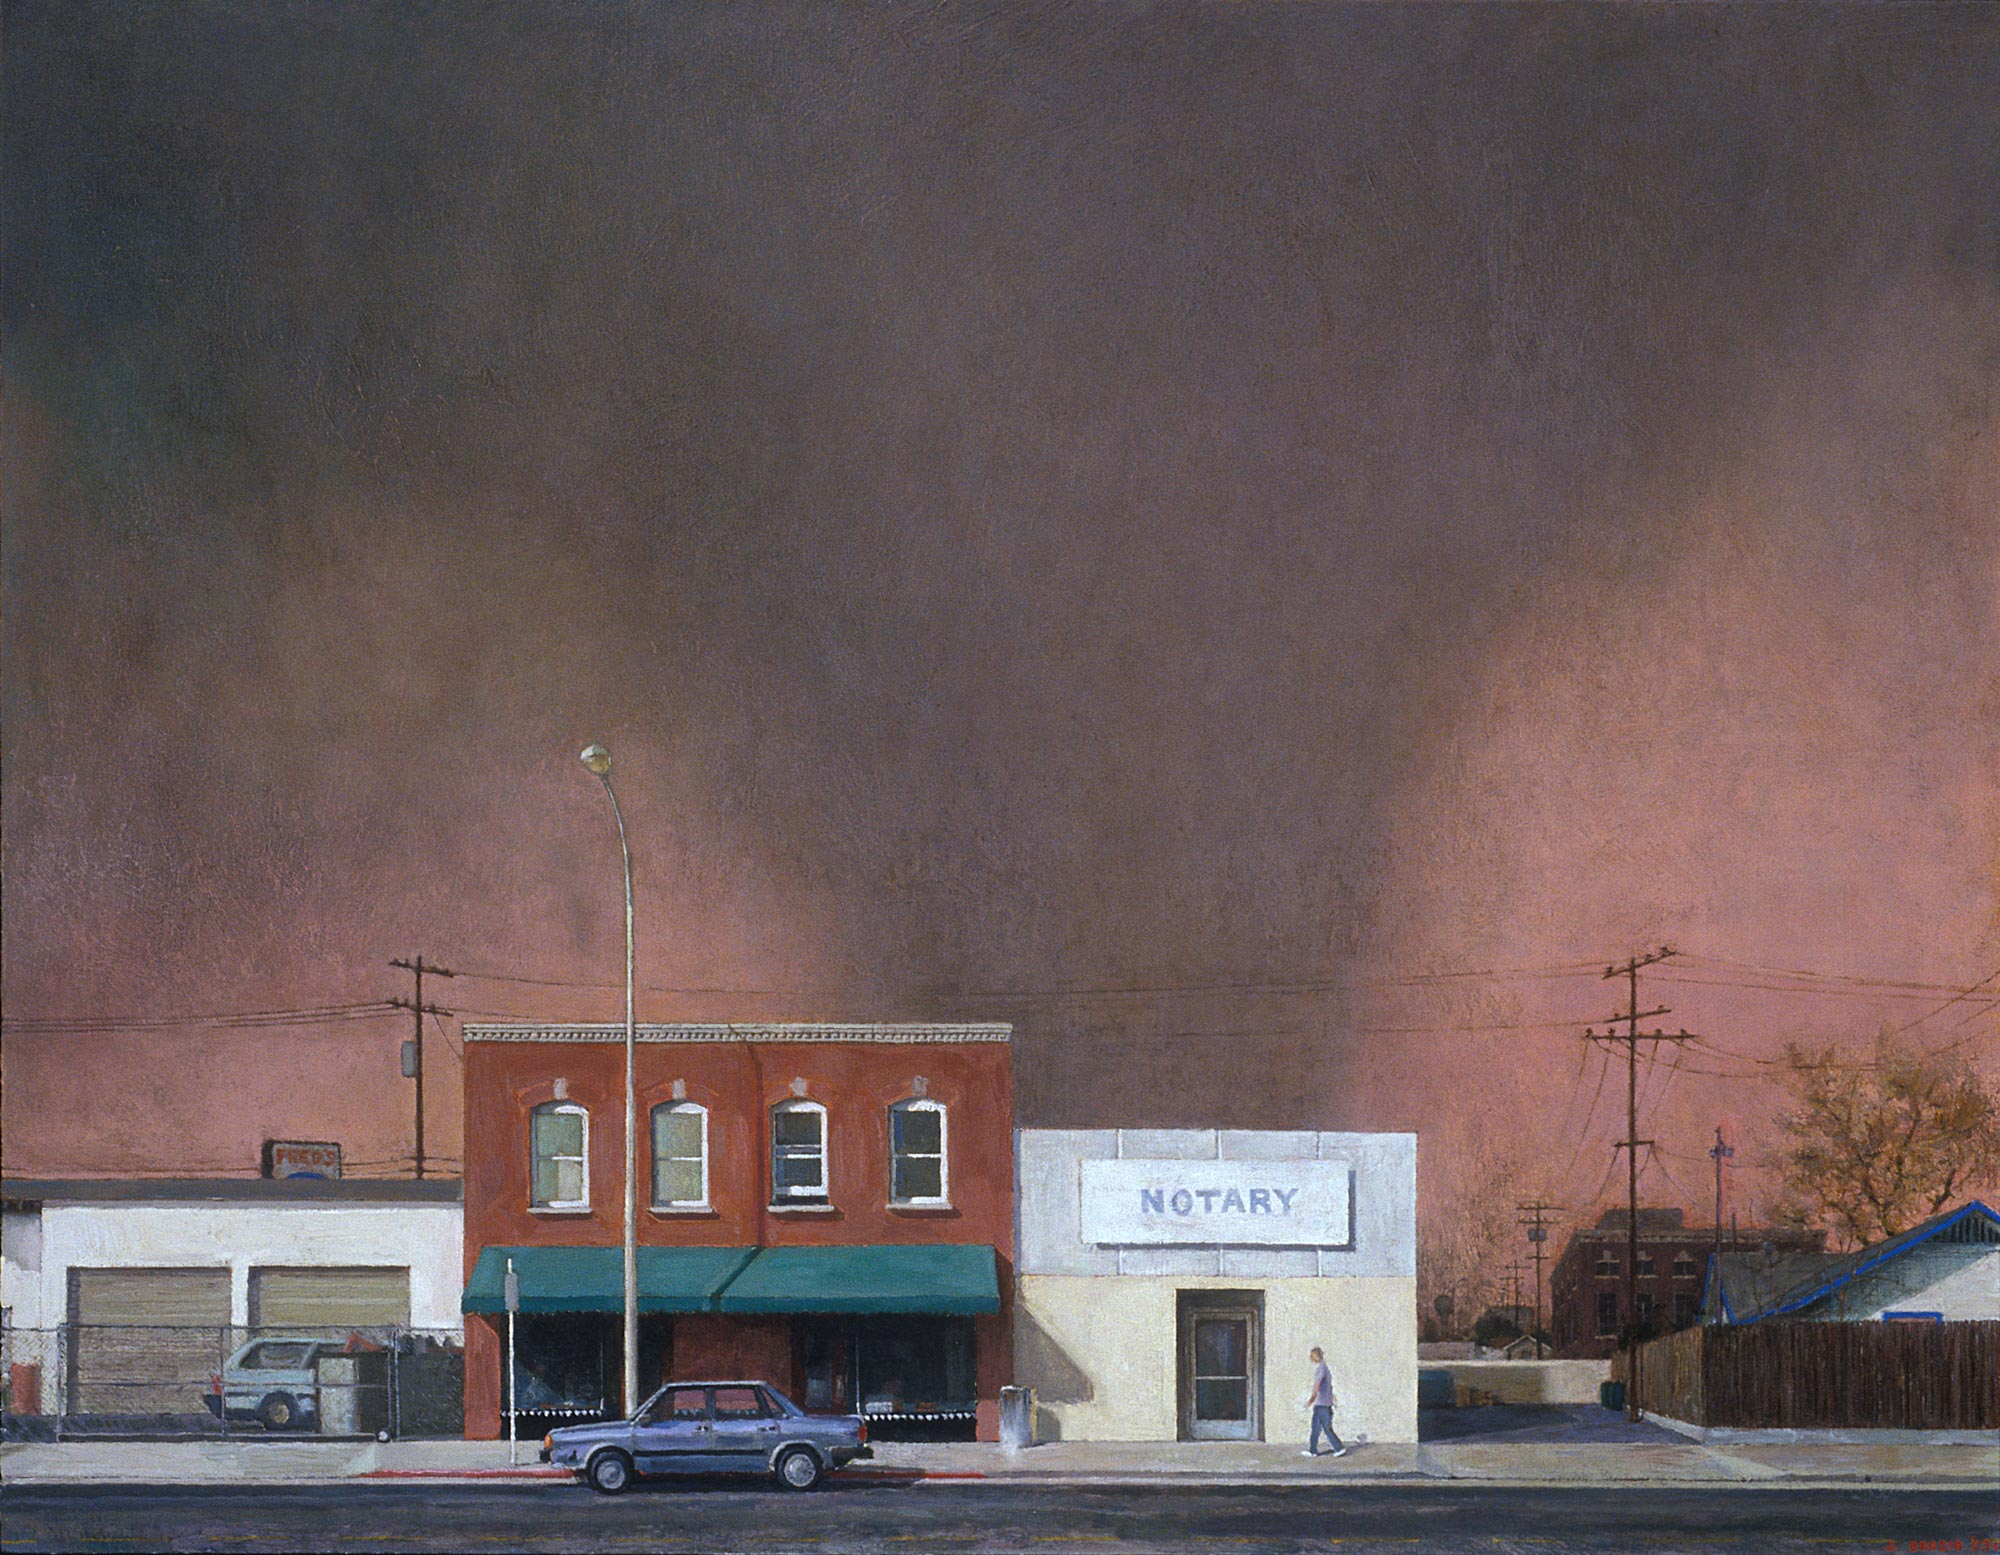 Edge of Town 5, 42 x 54, oil on canvas, 2003